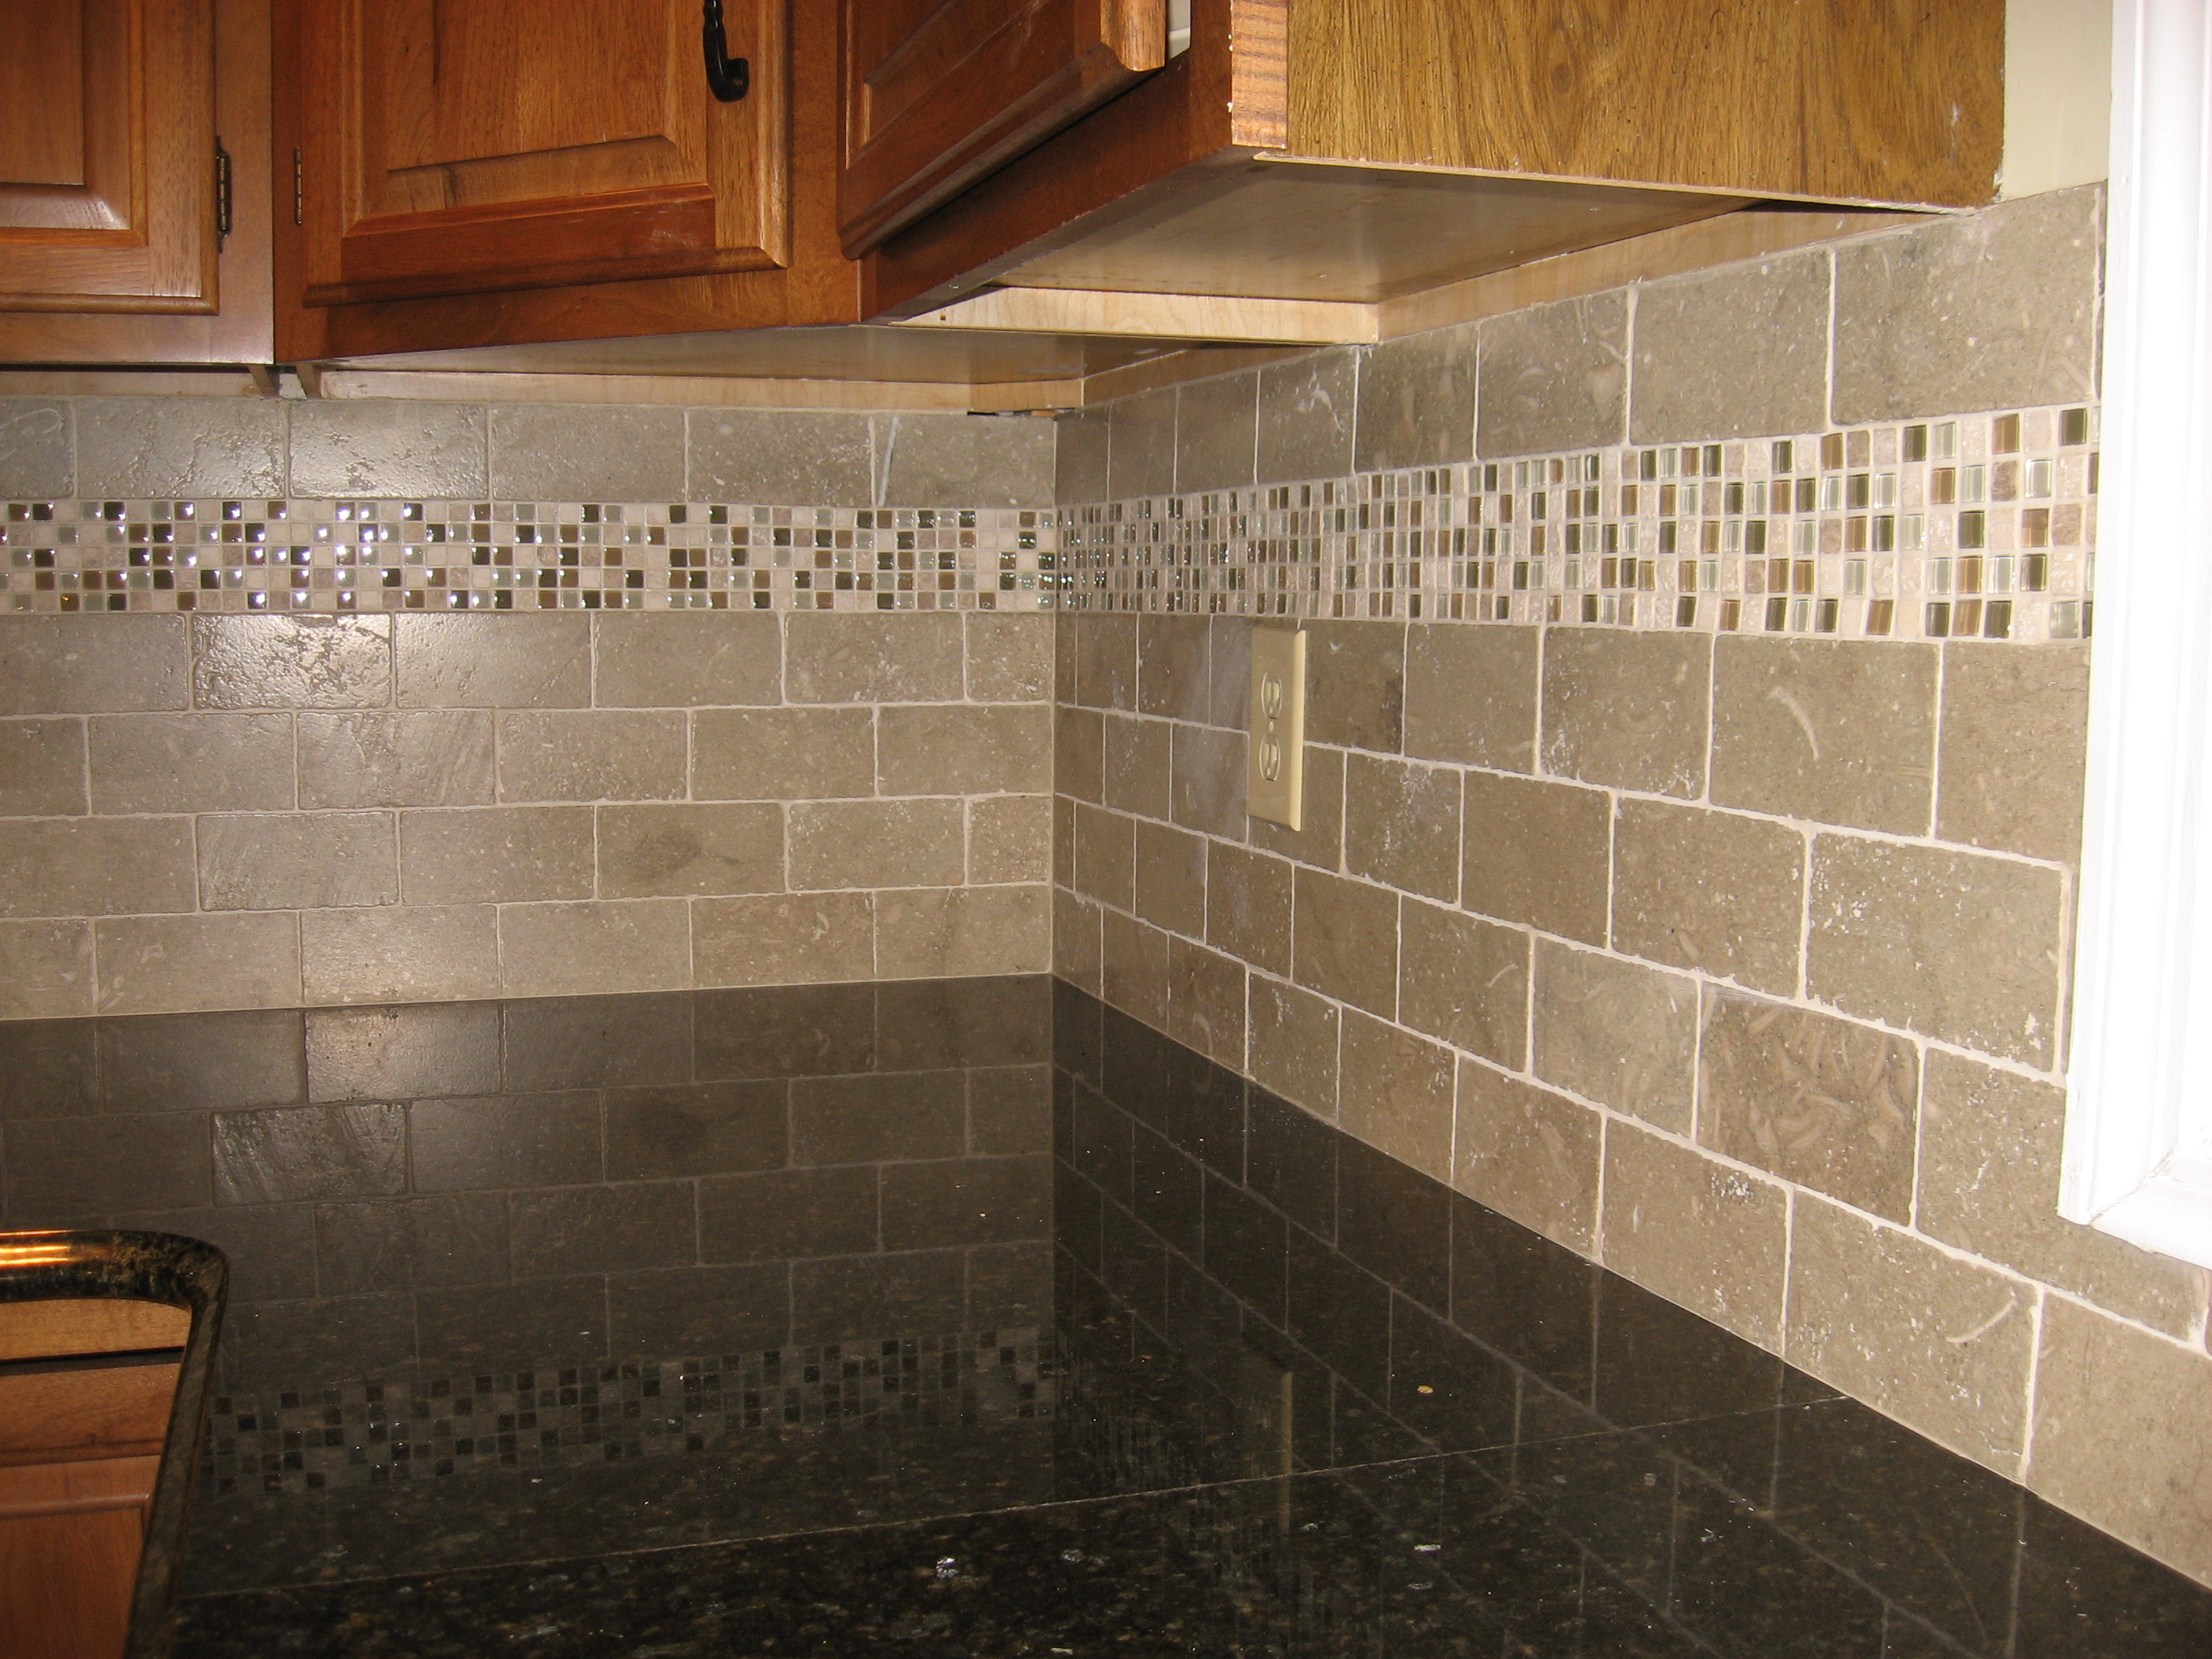 Kitchens Design kitchen backsplash glass tiles